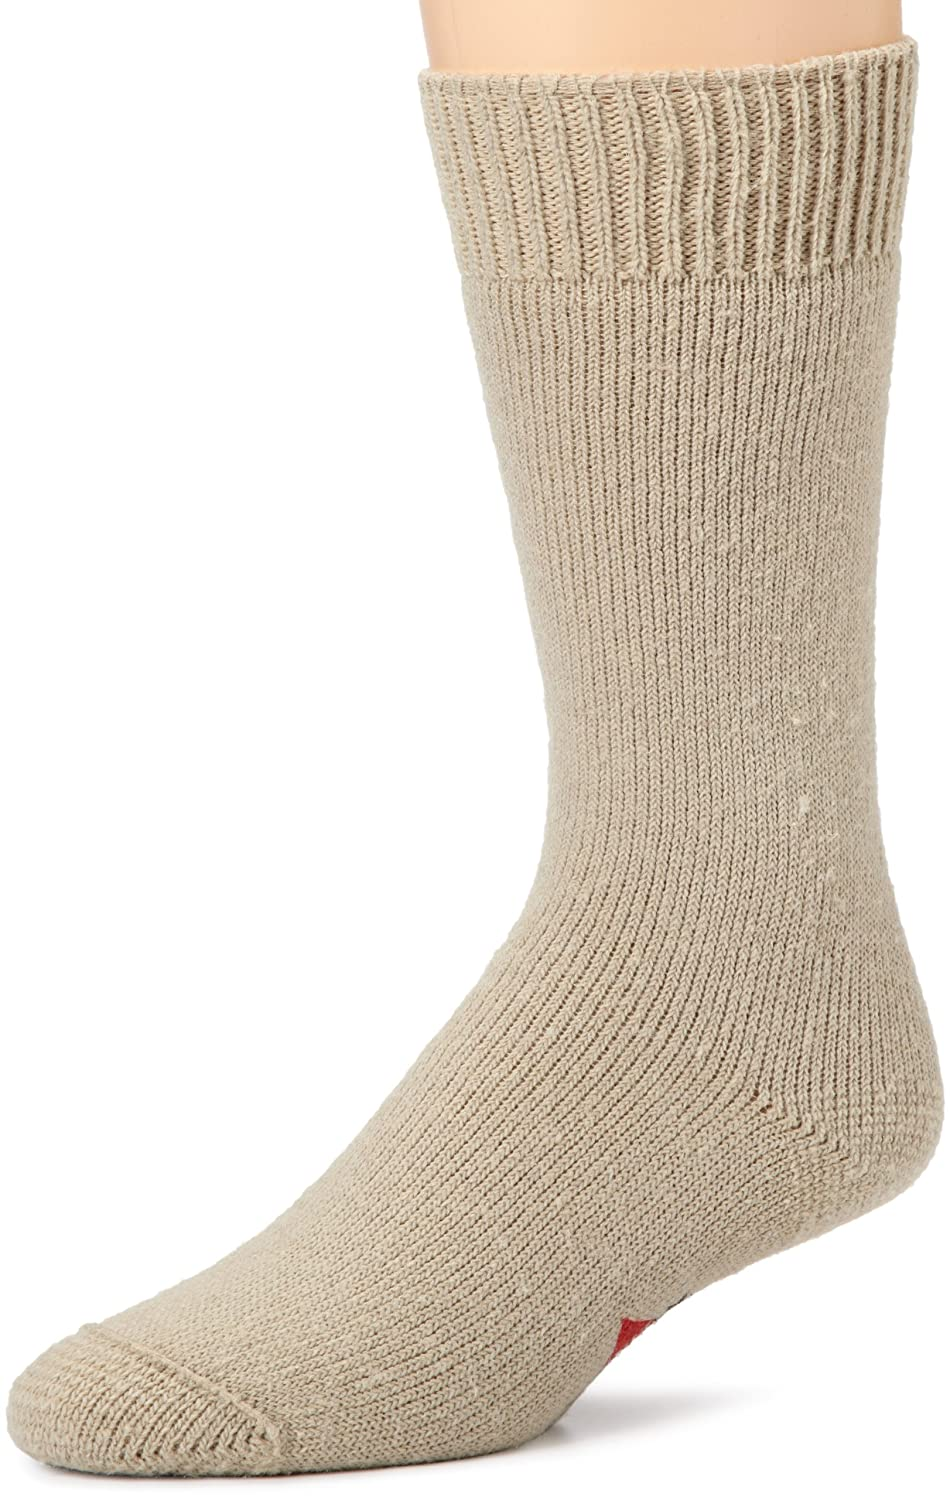 Wigwam Mens Combat Boot 2 Pack Socks, Sand, Medium